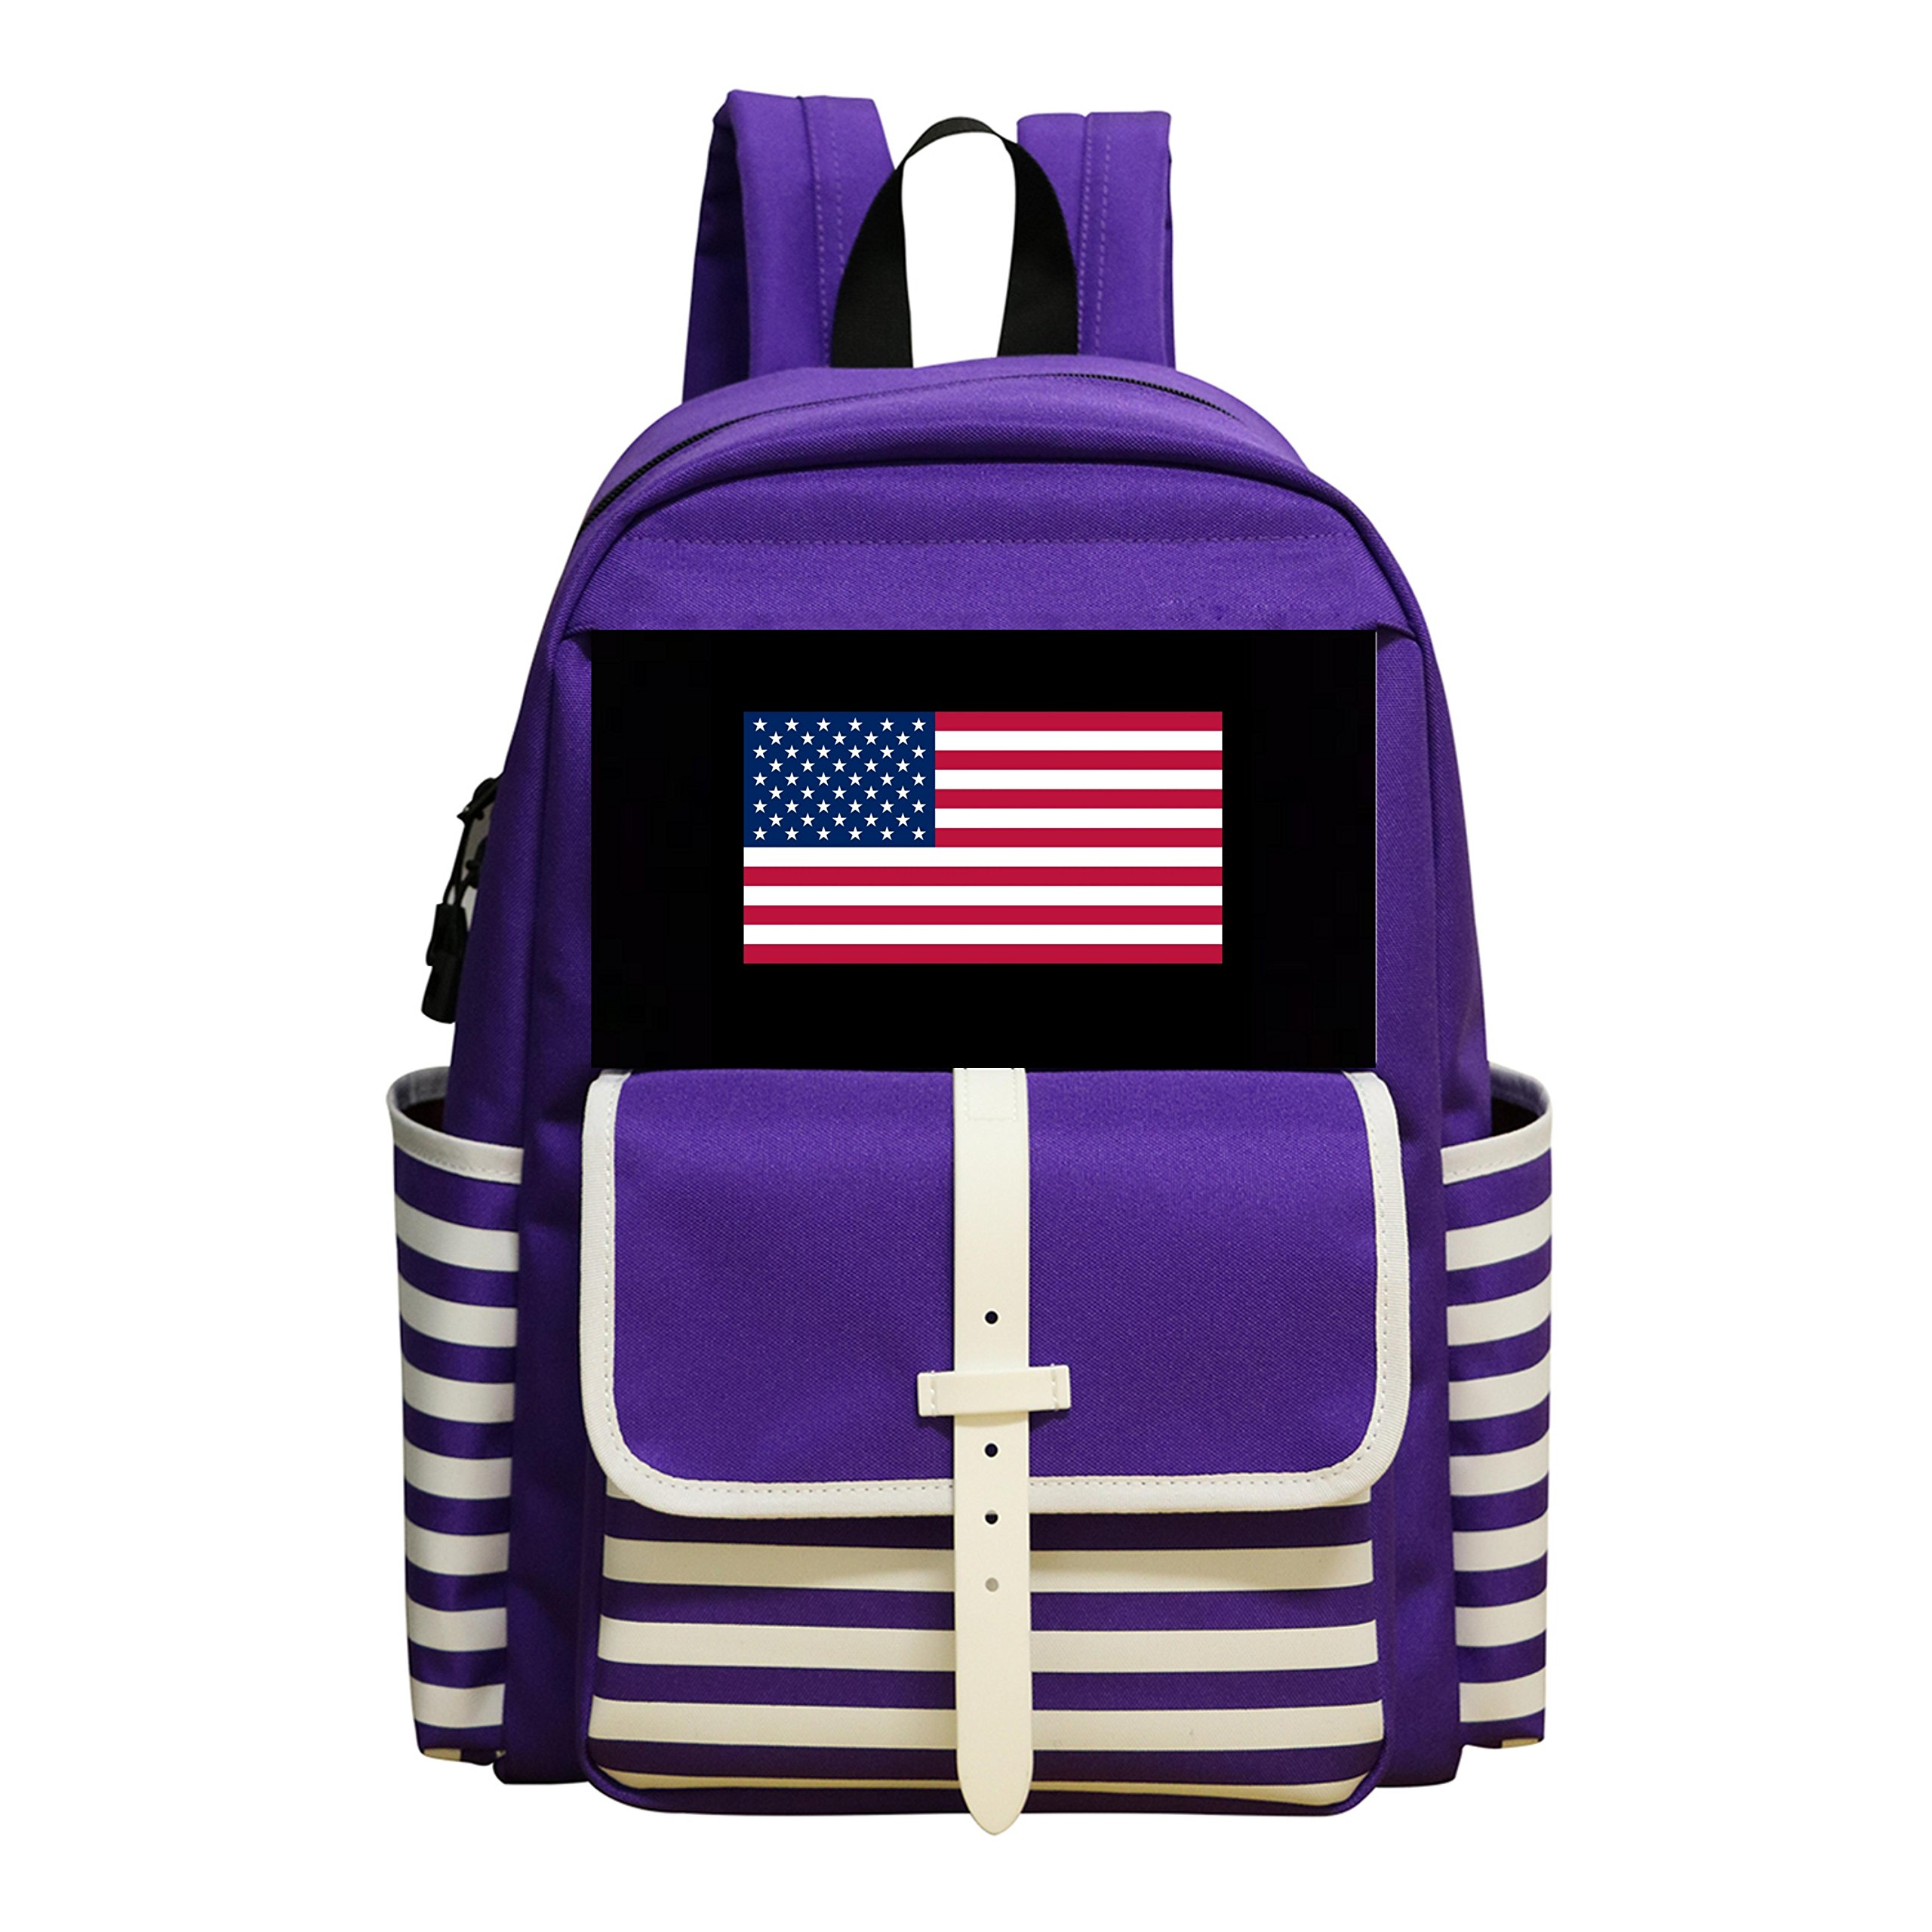 Boys & Girls School Backpack USA Wrestling Children Student Shoulder Bag by adengdda9